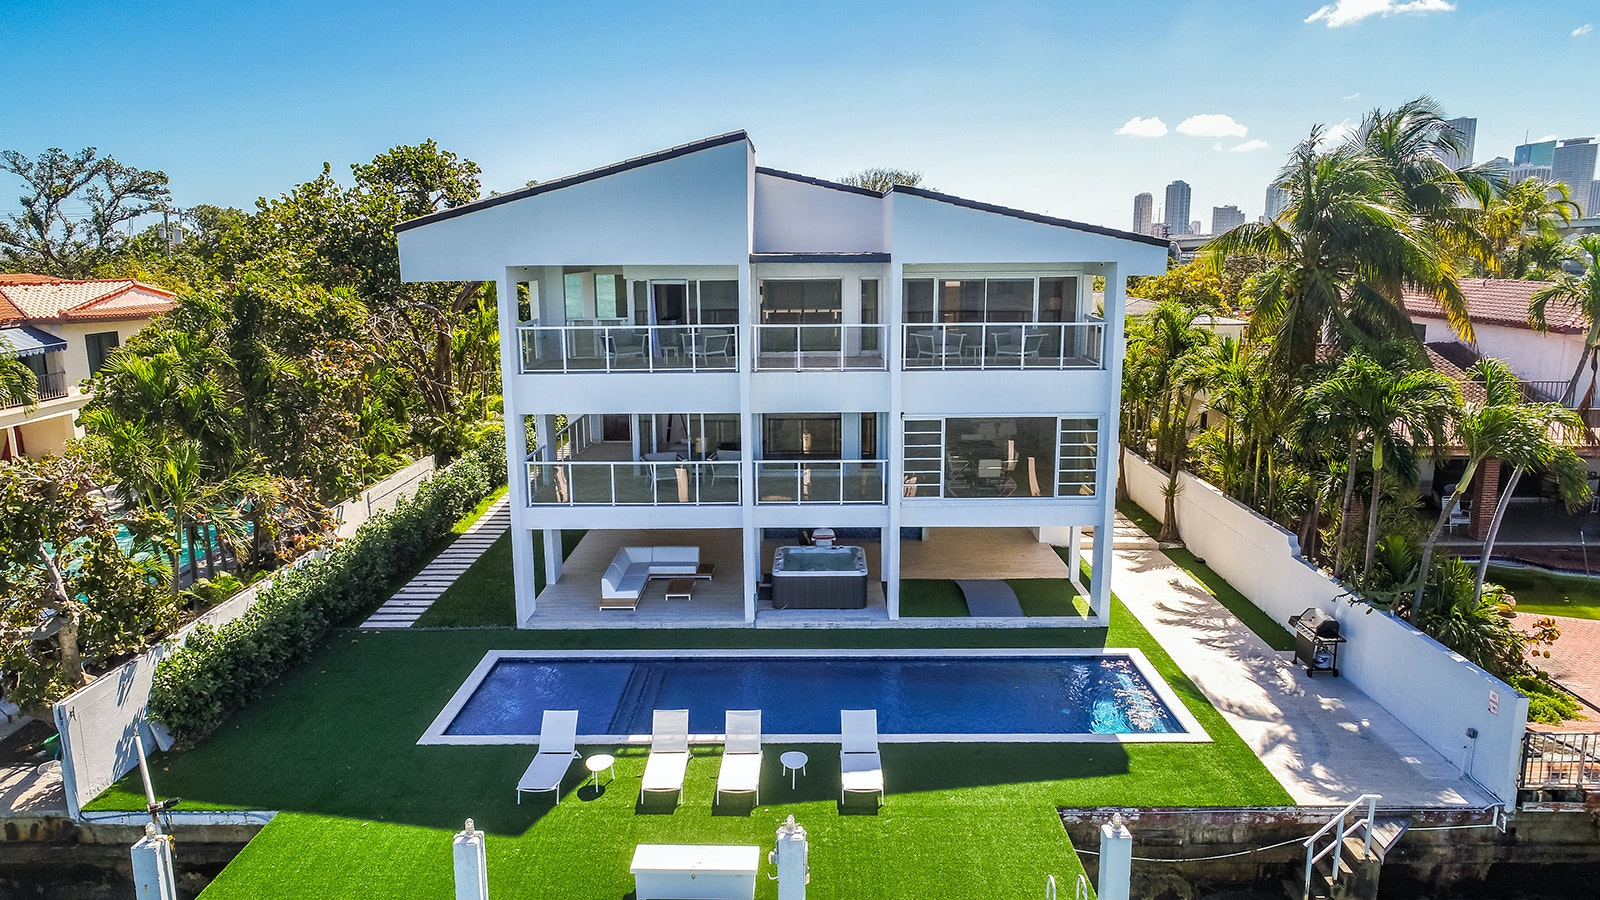 Pile up to 16 friends in this eight-bedroom, seven-and-a-half-bath dream house in the posh Venetian Islands.